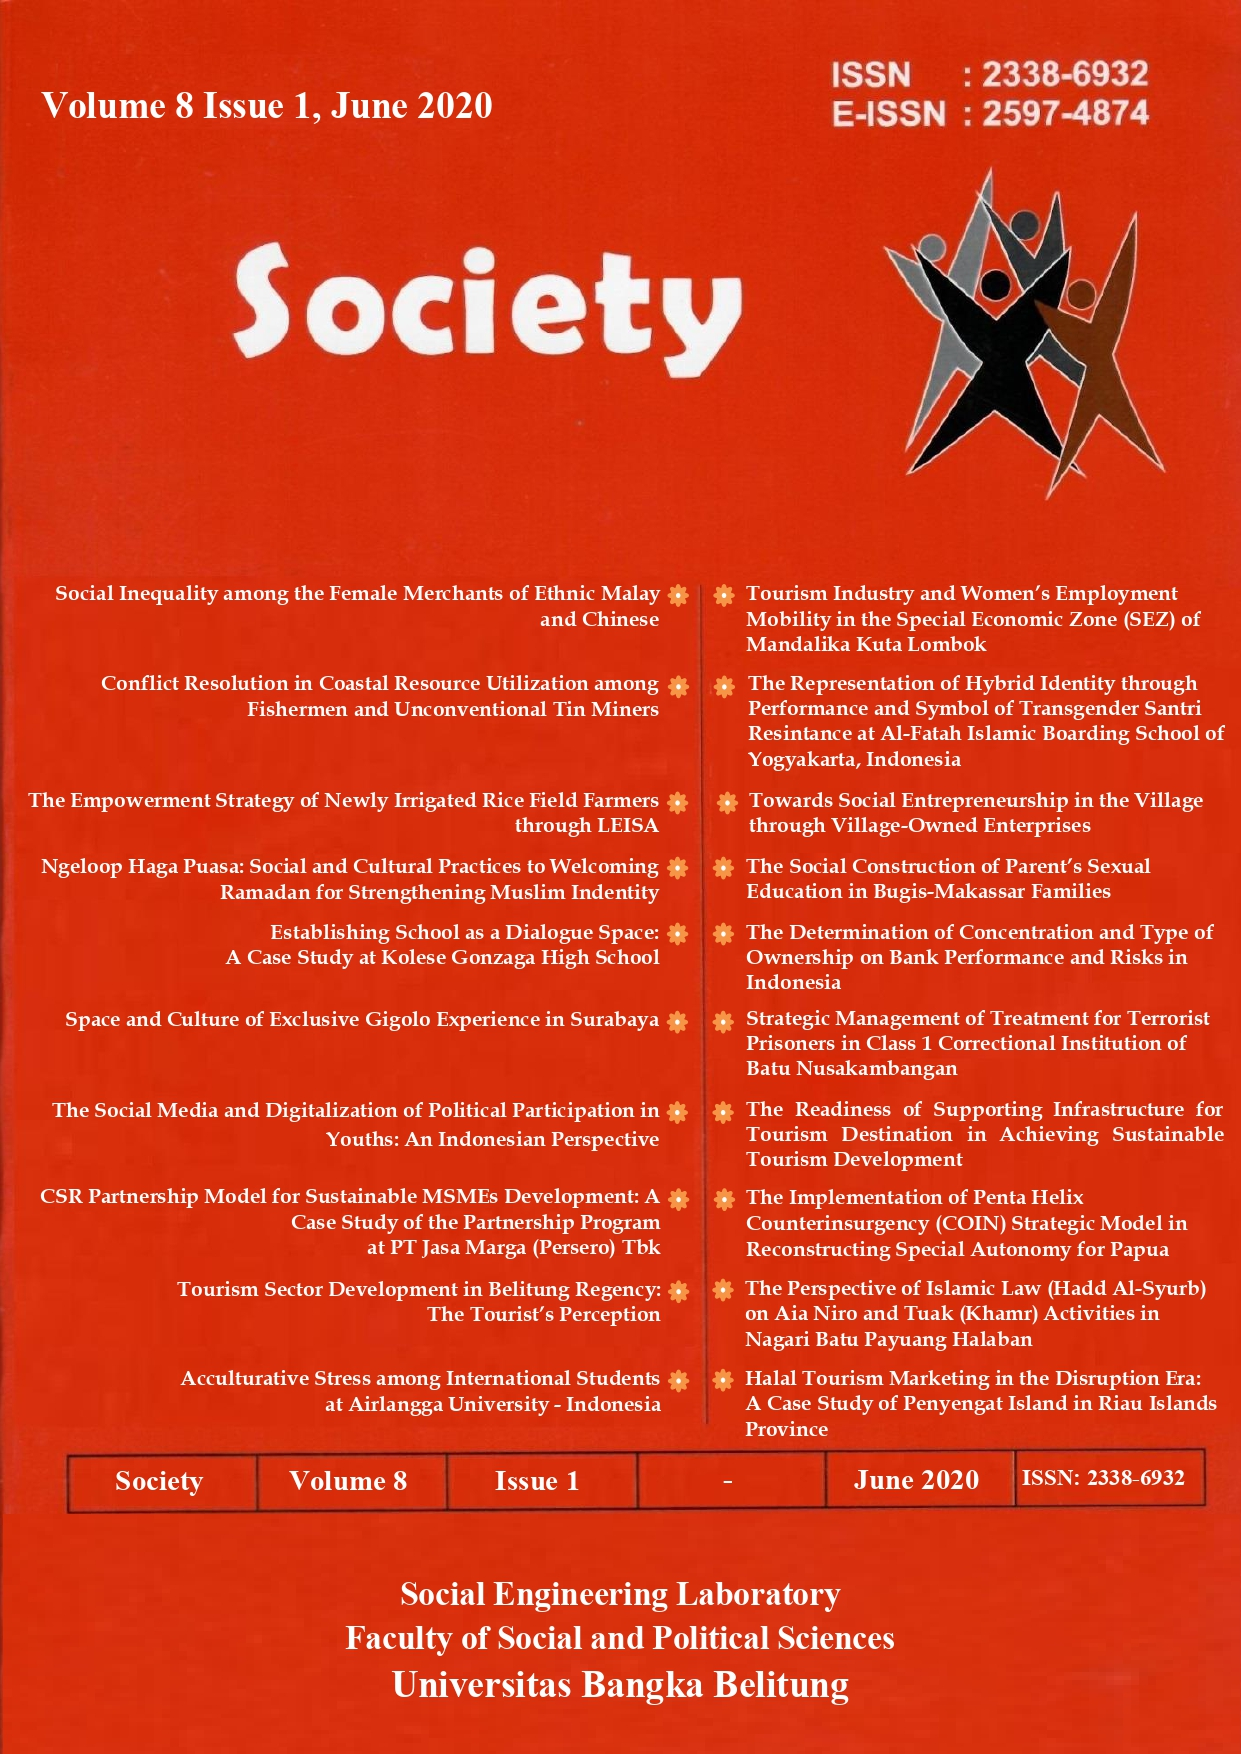 Society Volume 8 Issue 1#2020